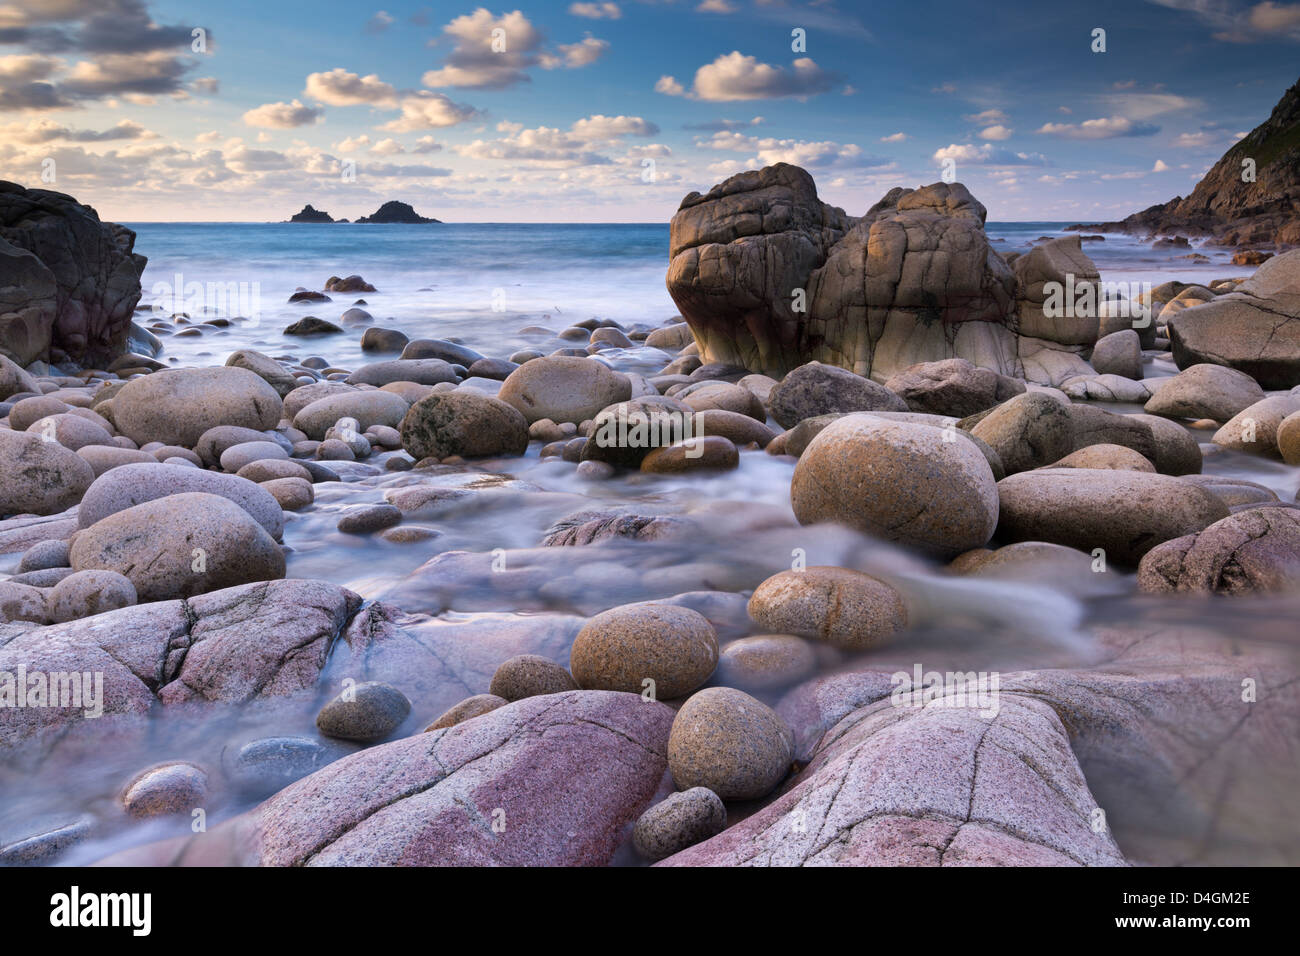 Rocky cove at Porth Nanven near Land's End, Cornwall, England. Winter (December) 2012. - Stock Image